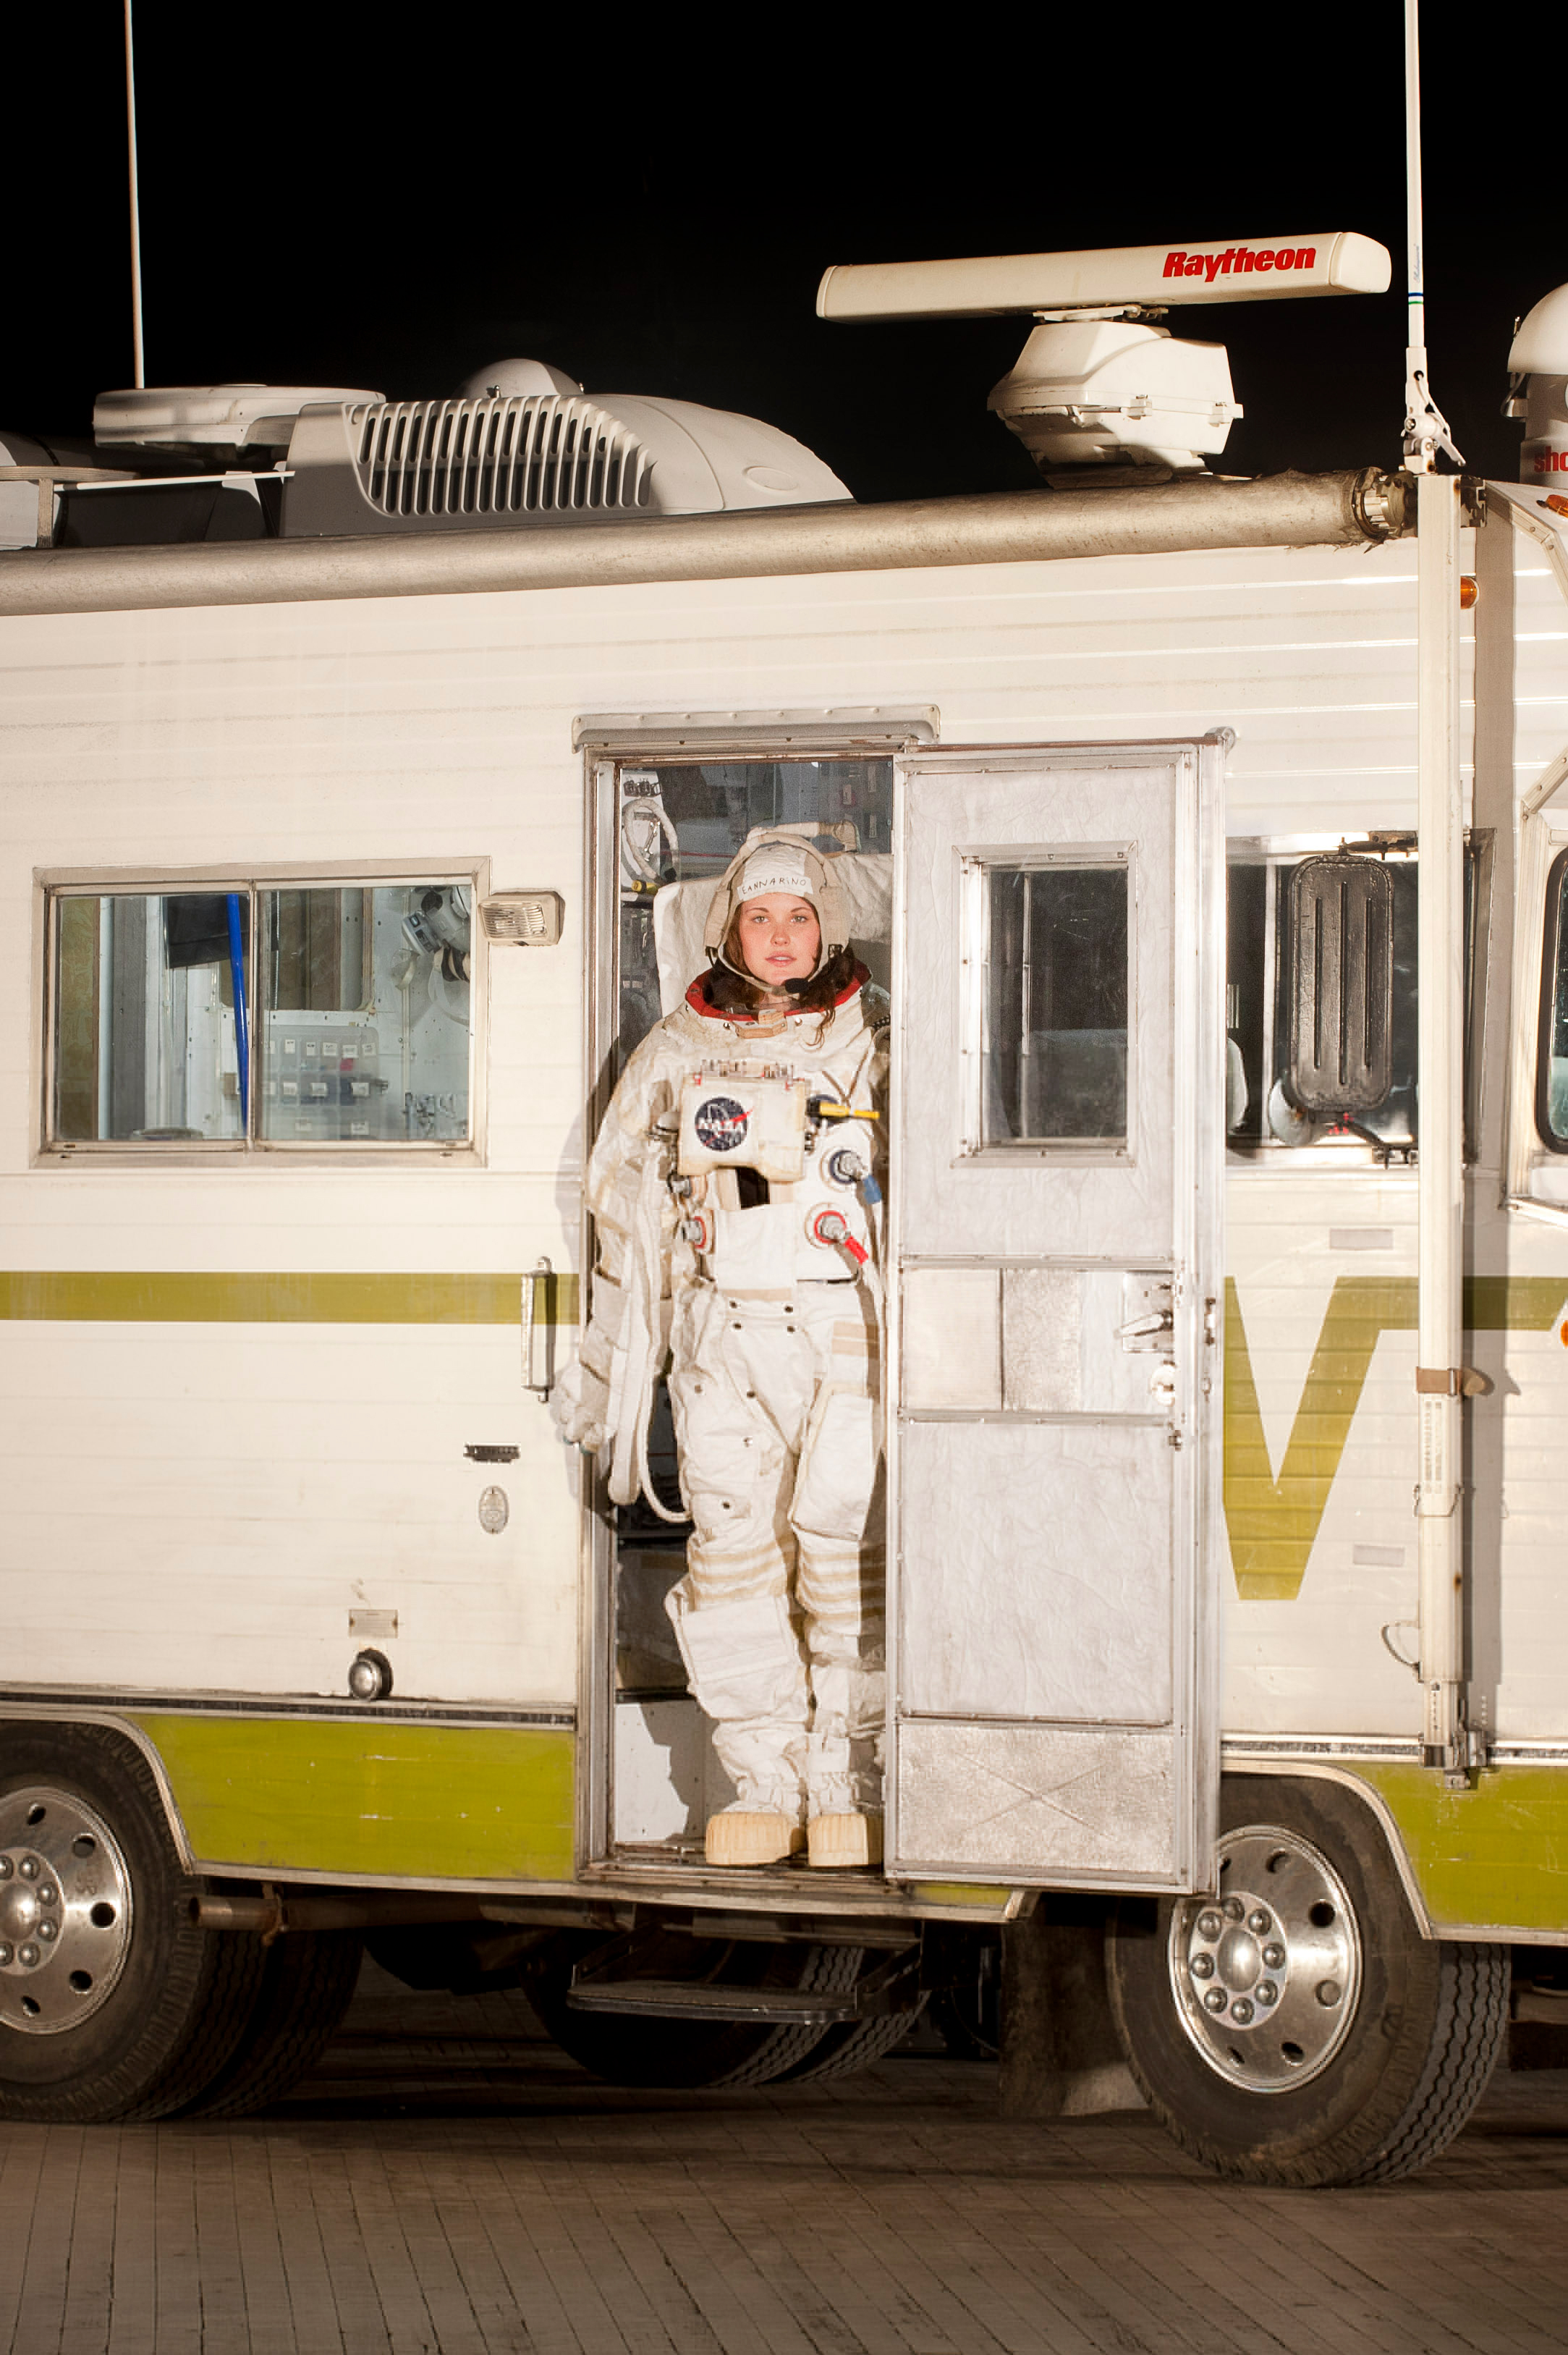 Mary Eannarino on the Mobile Quarantine Facility in